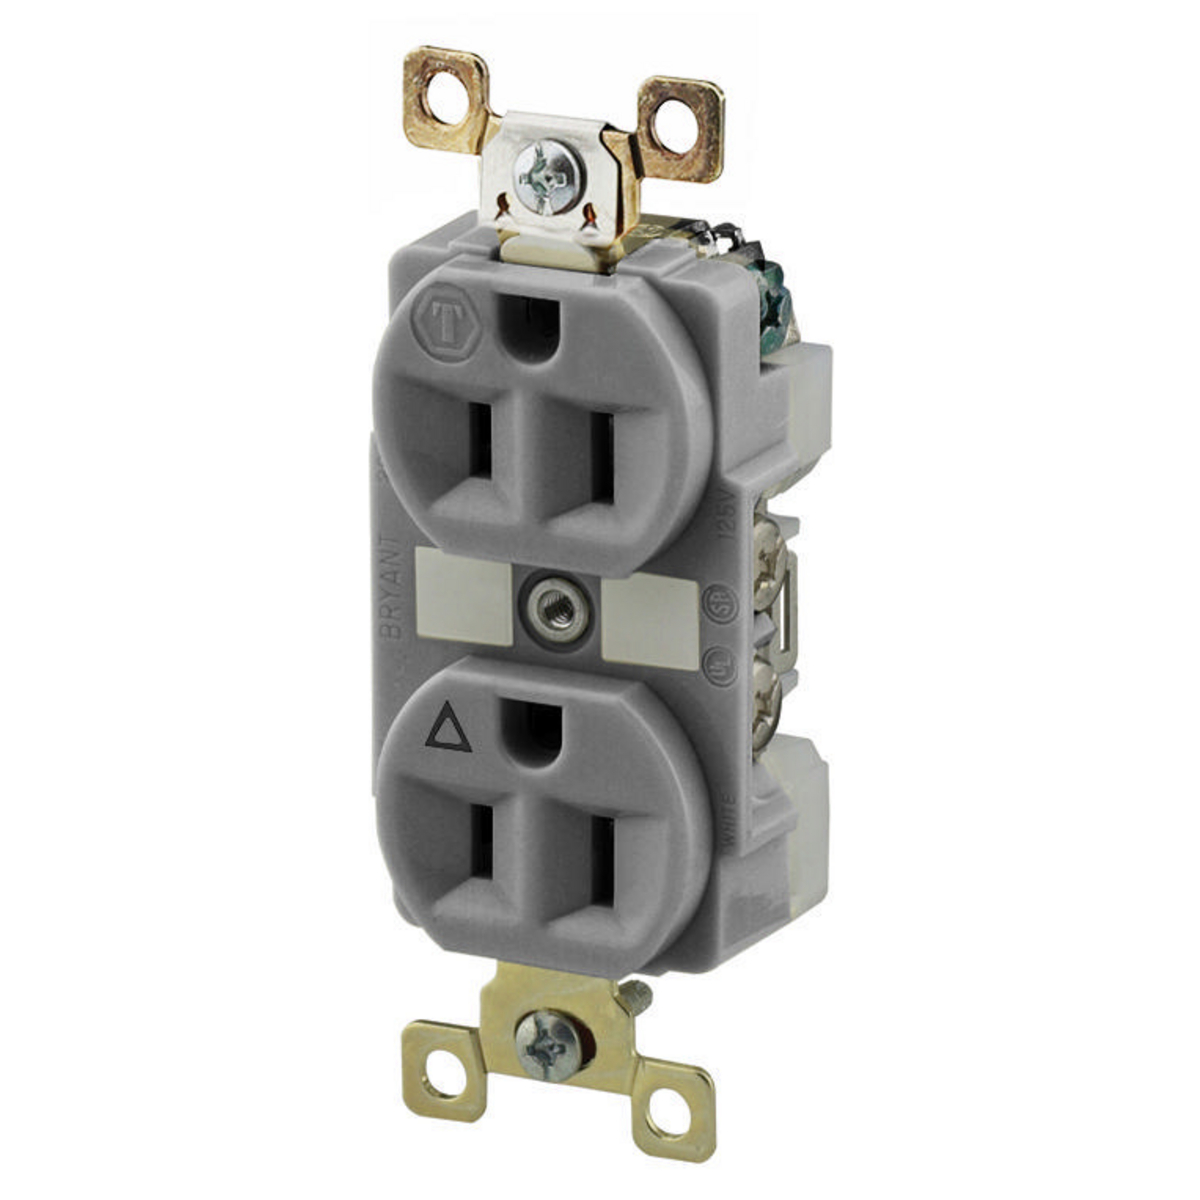 bry5262iggry industrial receptacles straight blade devices rh hubbell com bryant wiring devices distributors bryant wiring devices catalog